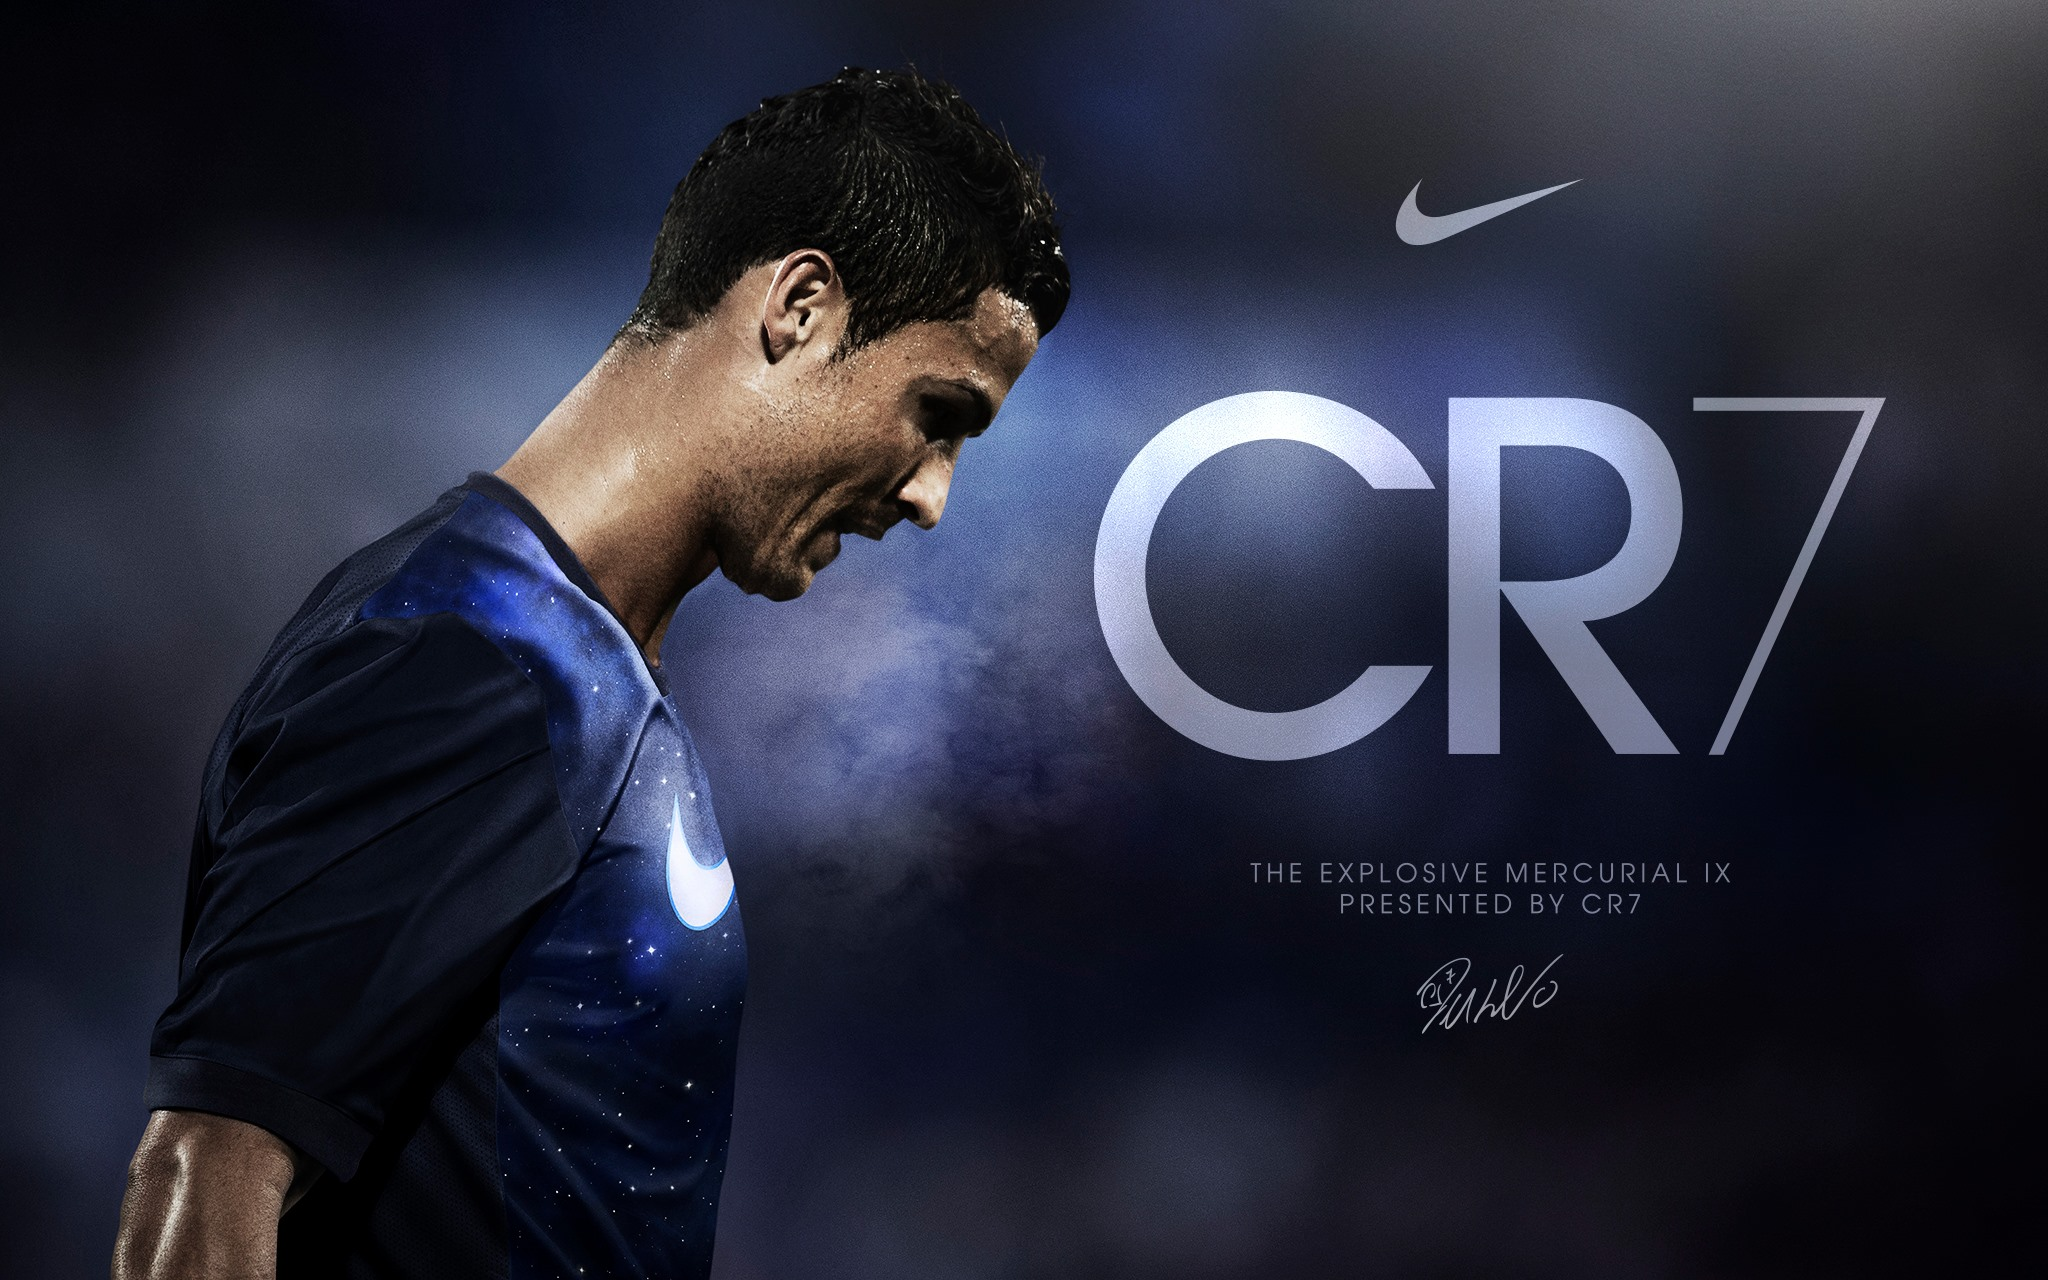 New collection of cr7 wallpapers 2015 Stylish Family 2048x1280